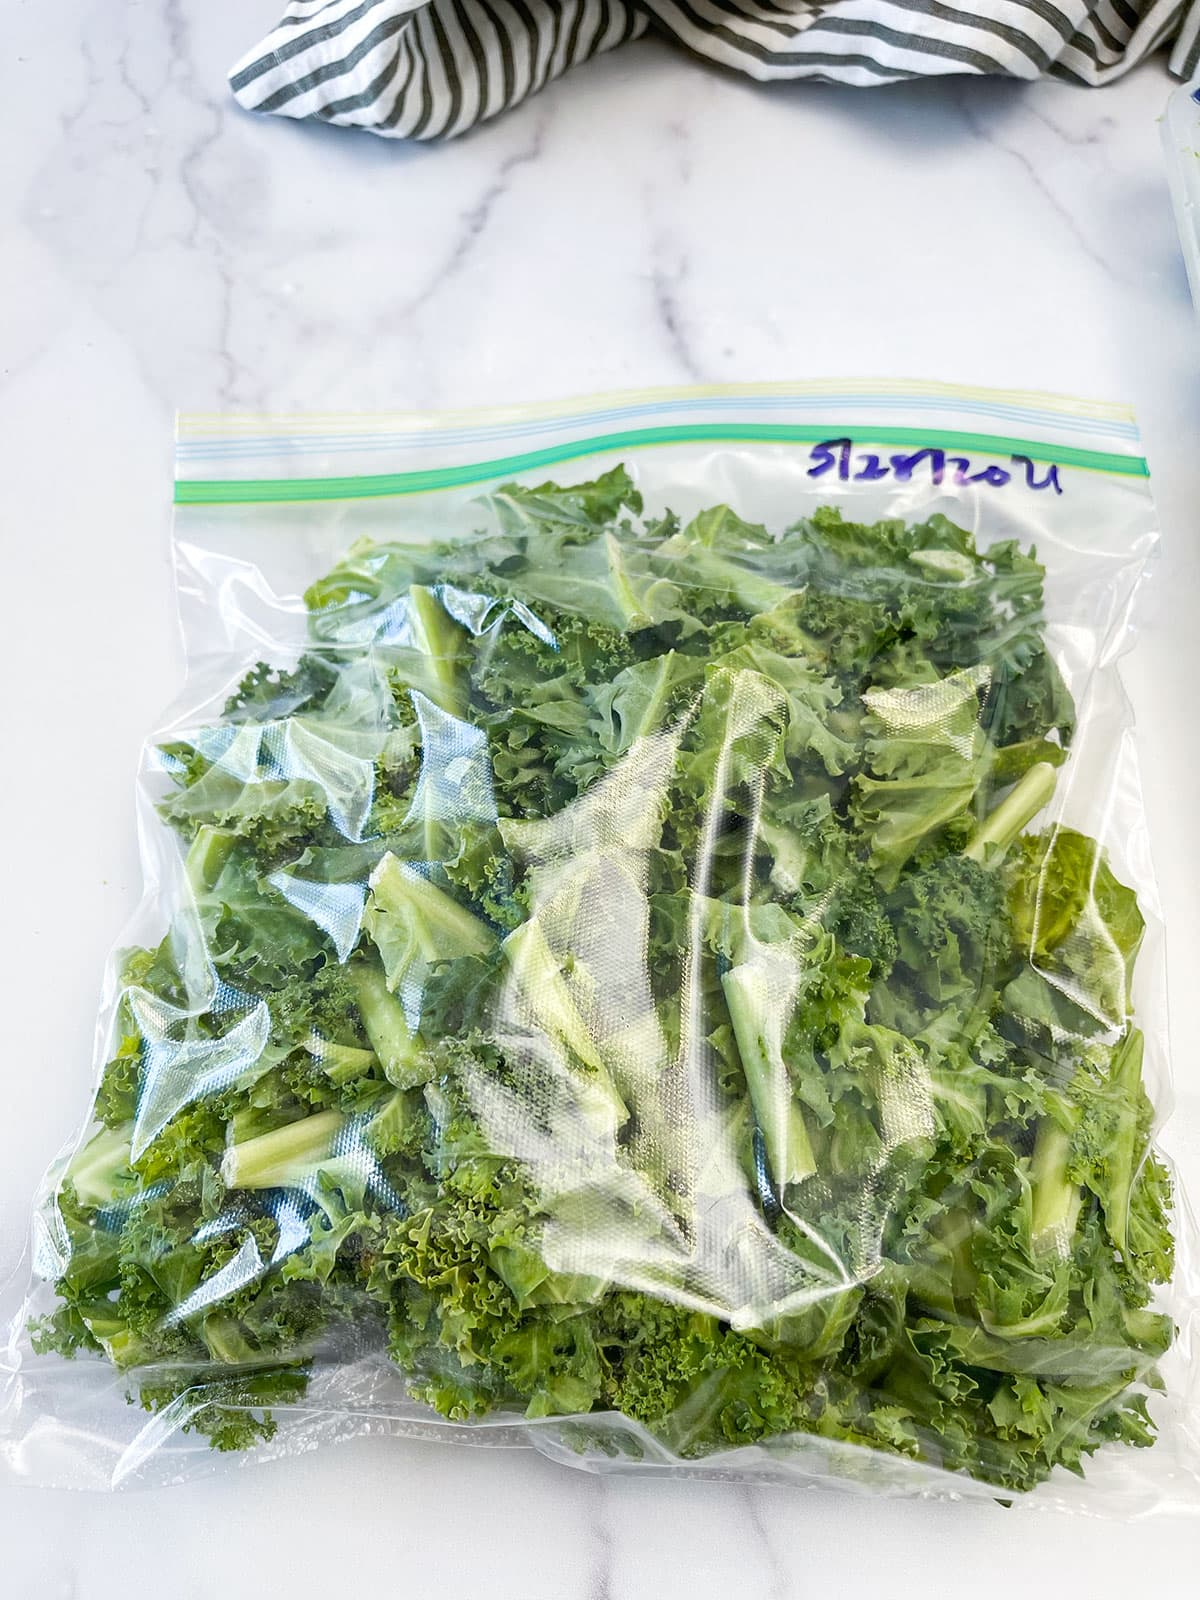 chopped kale in bag on white background